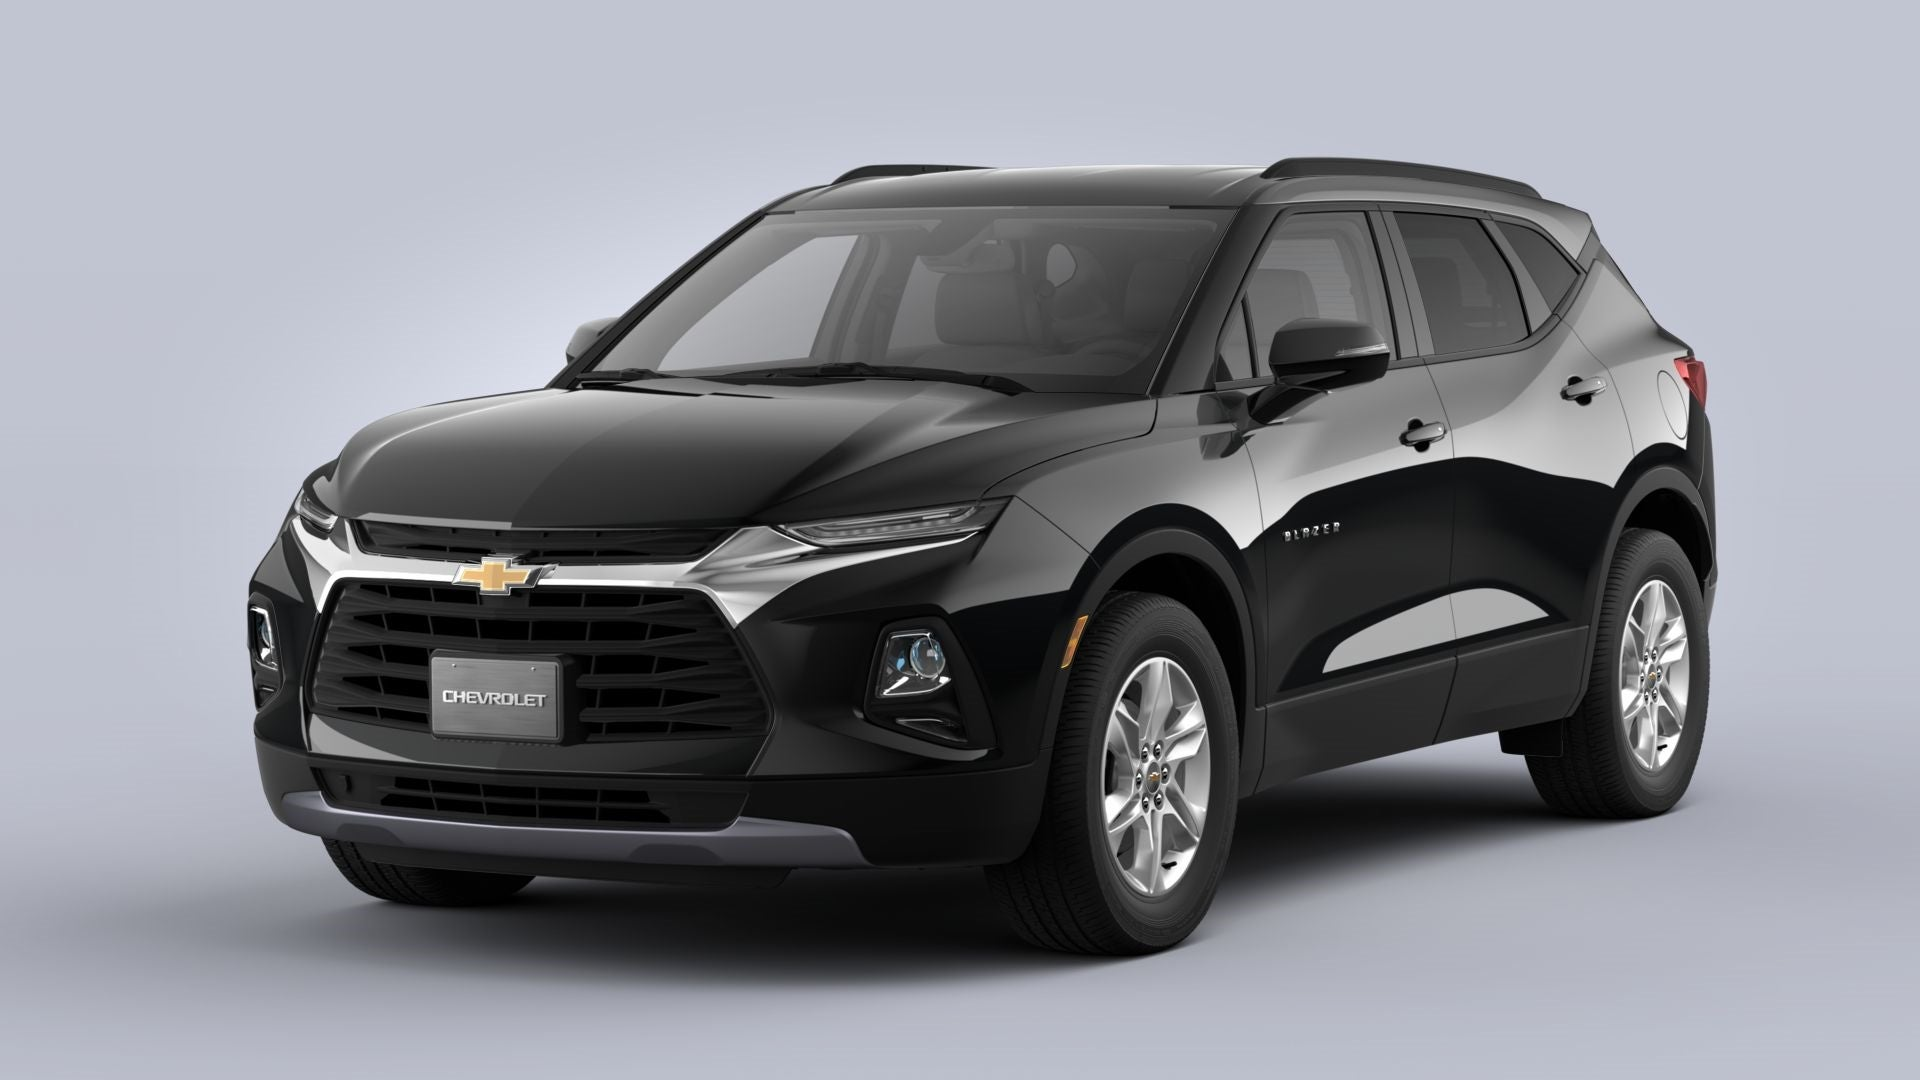 chevrolet vehicle inventory lebanon chevrolet dealer in lebanon oh new and used chevrolet dealership middletown mason springboro oh lebanon chevrolet dealer in lebanon oh